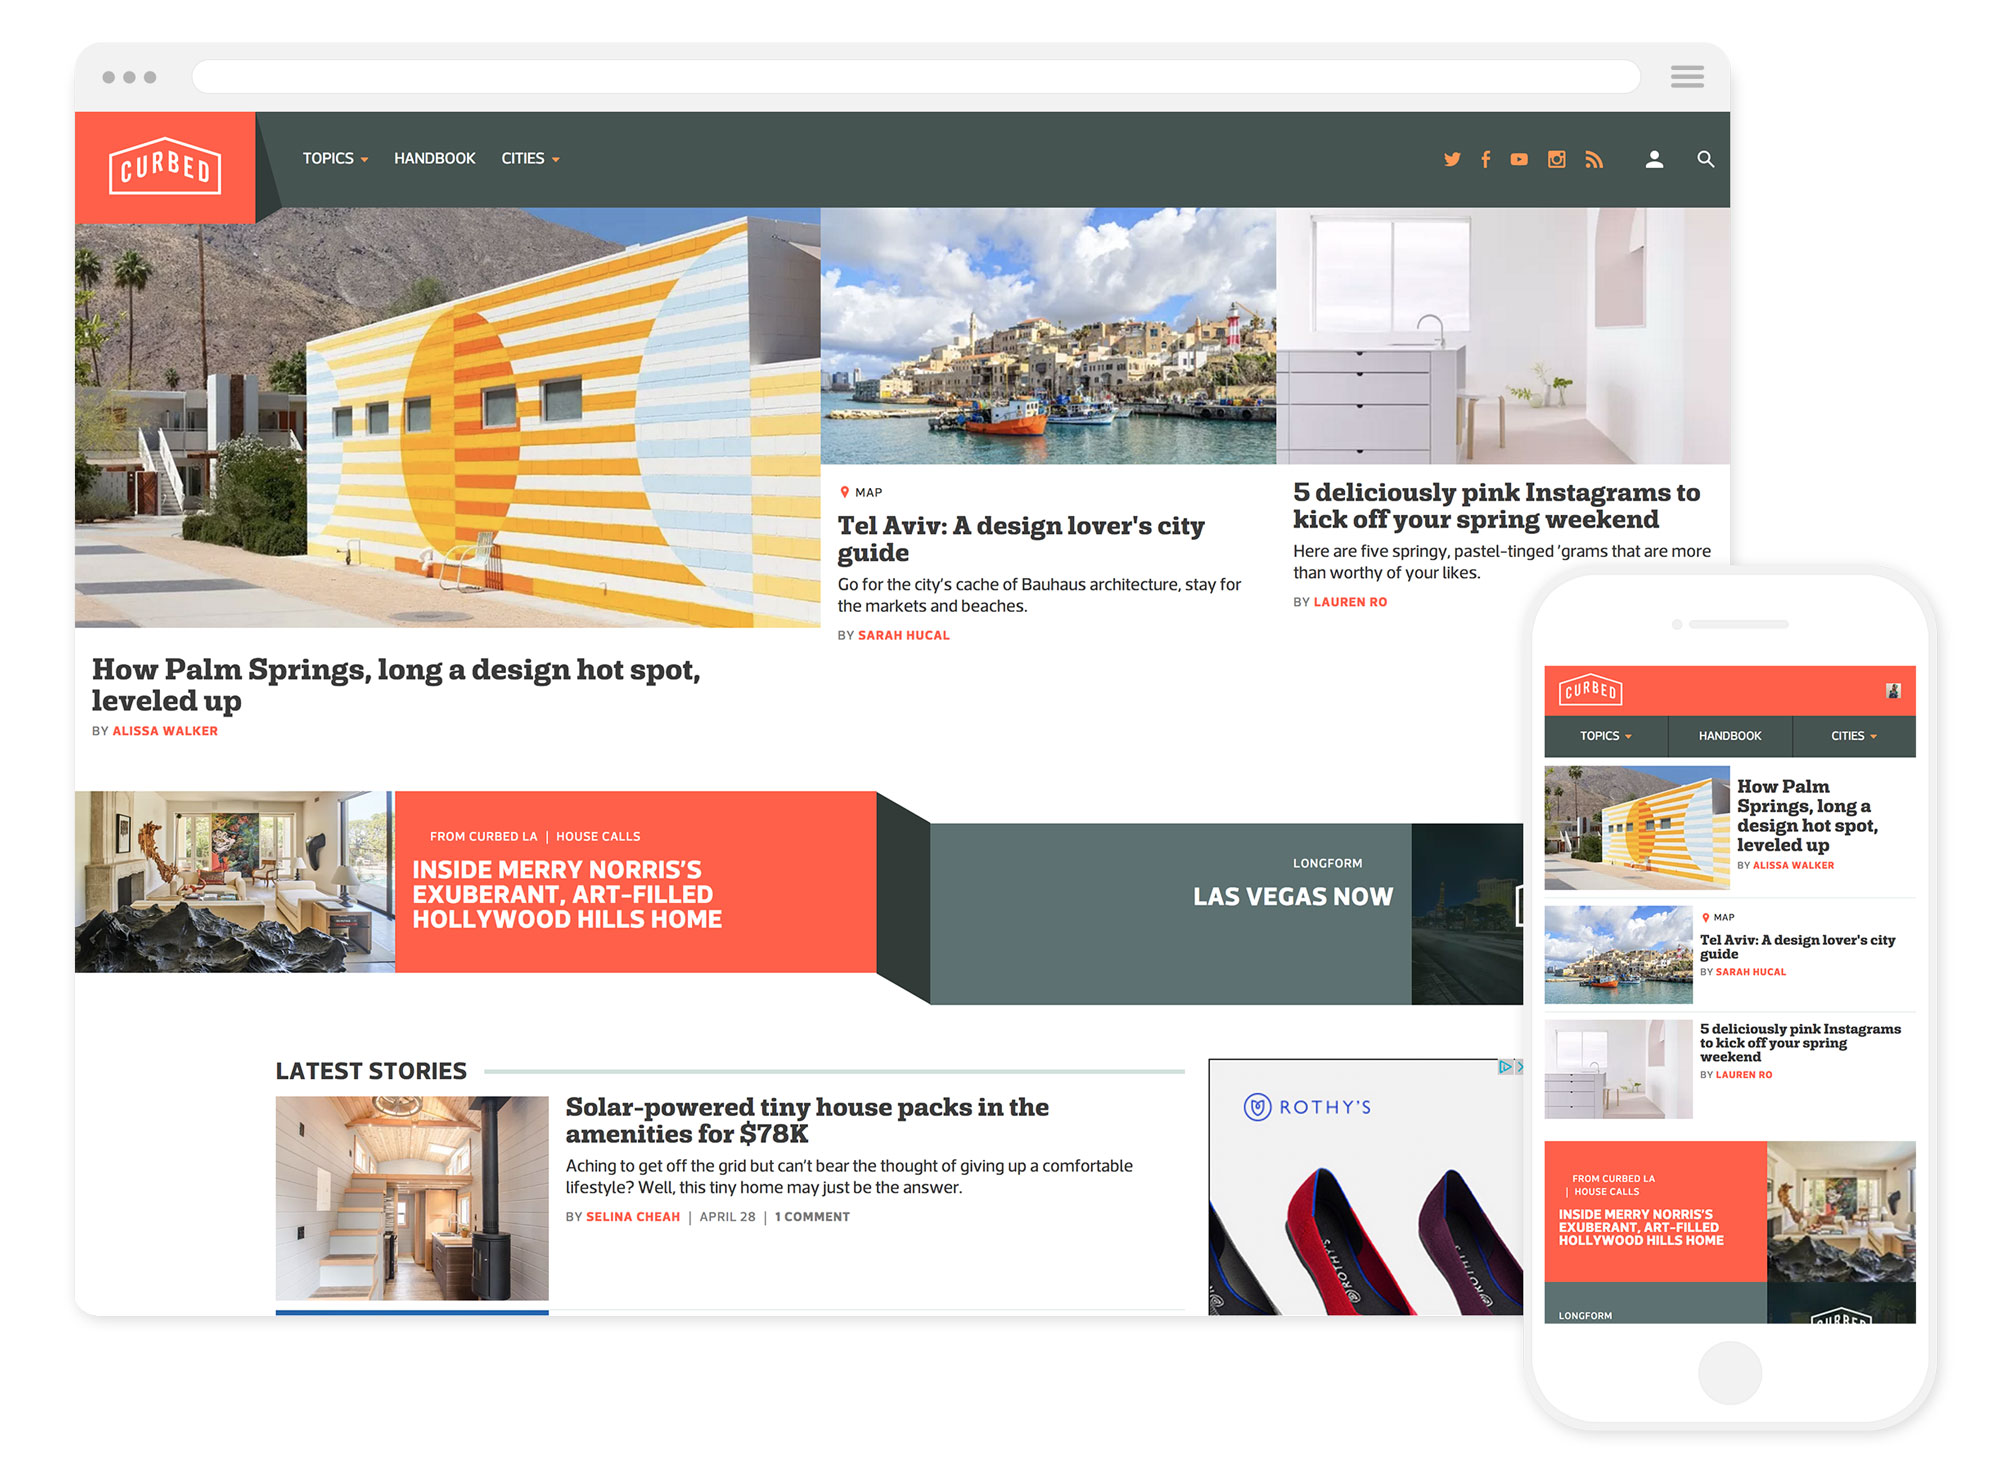 Curbed's homepage